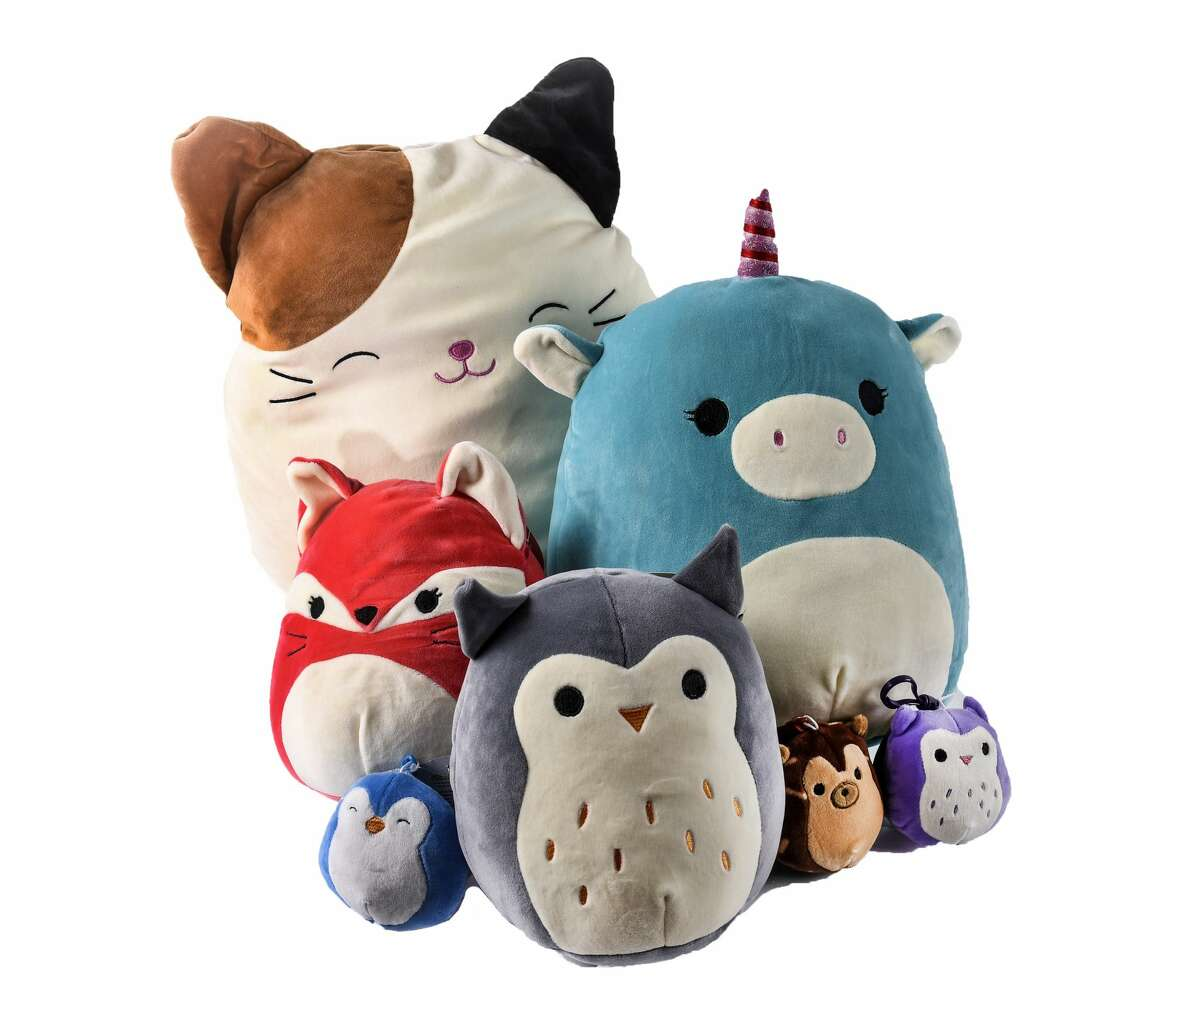 An assortment of Squishmallows by Kellytoy.